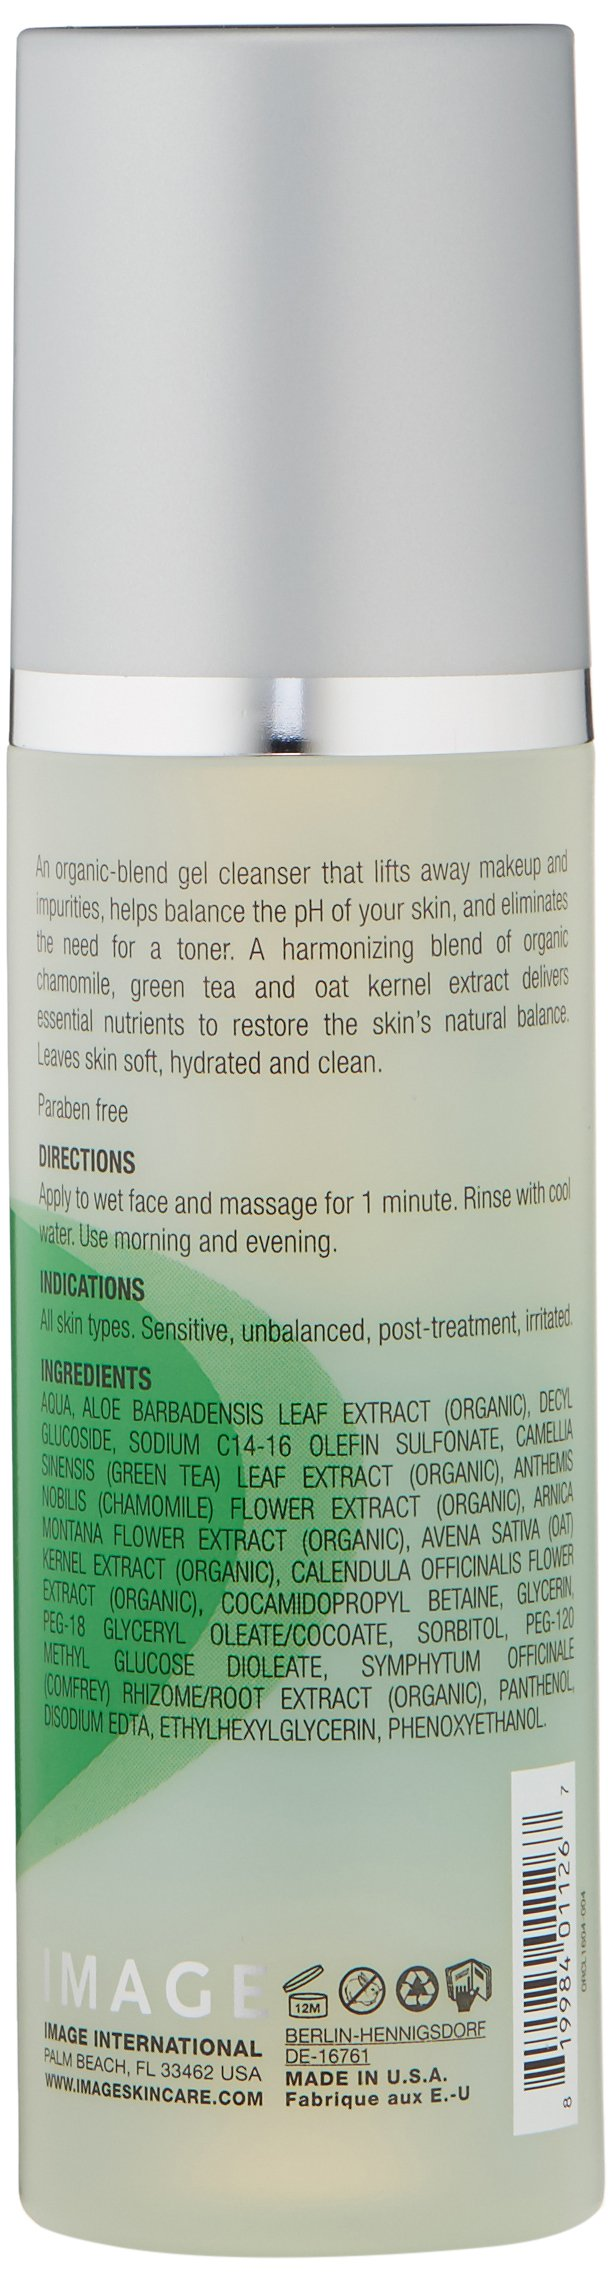 IMAGE Skincare Ormedic Balancing Facial Cleanser, 6 oz. by IMAGE Skincare (Image #3)